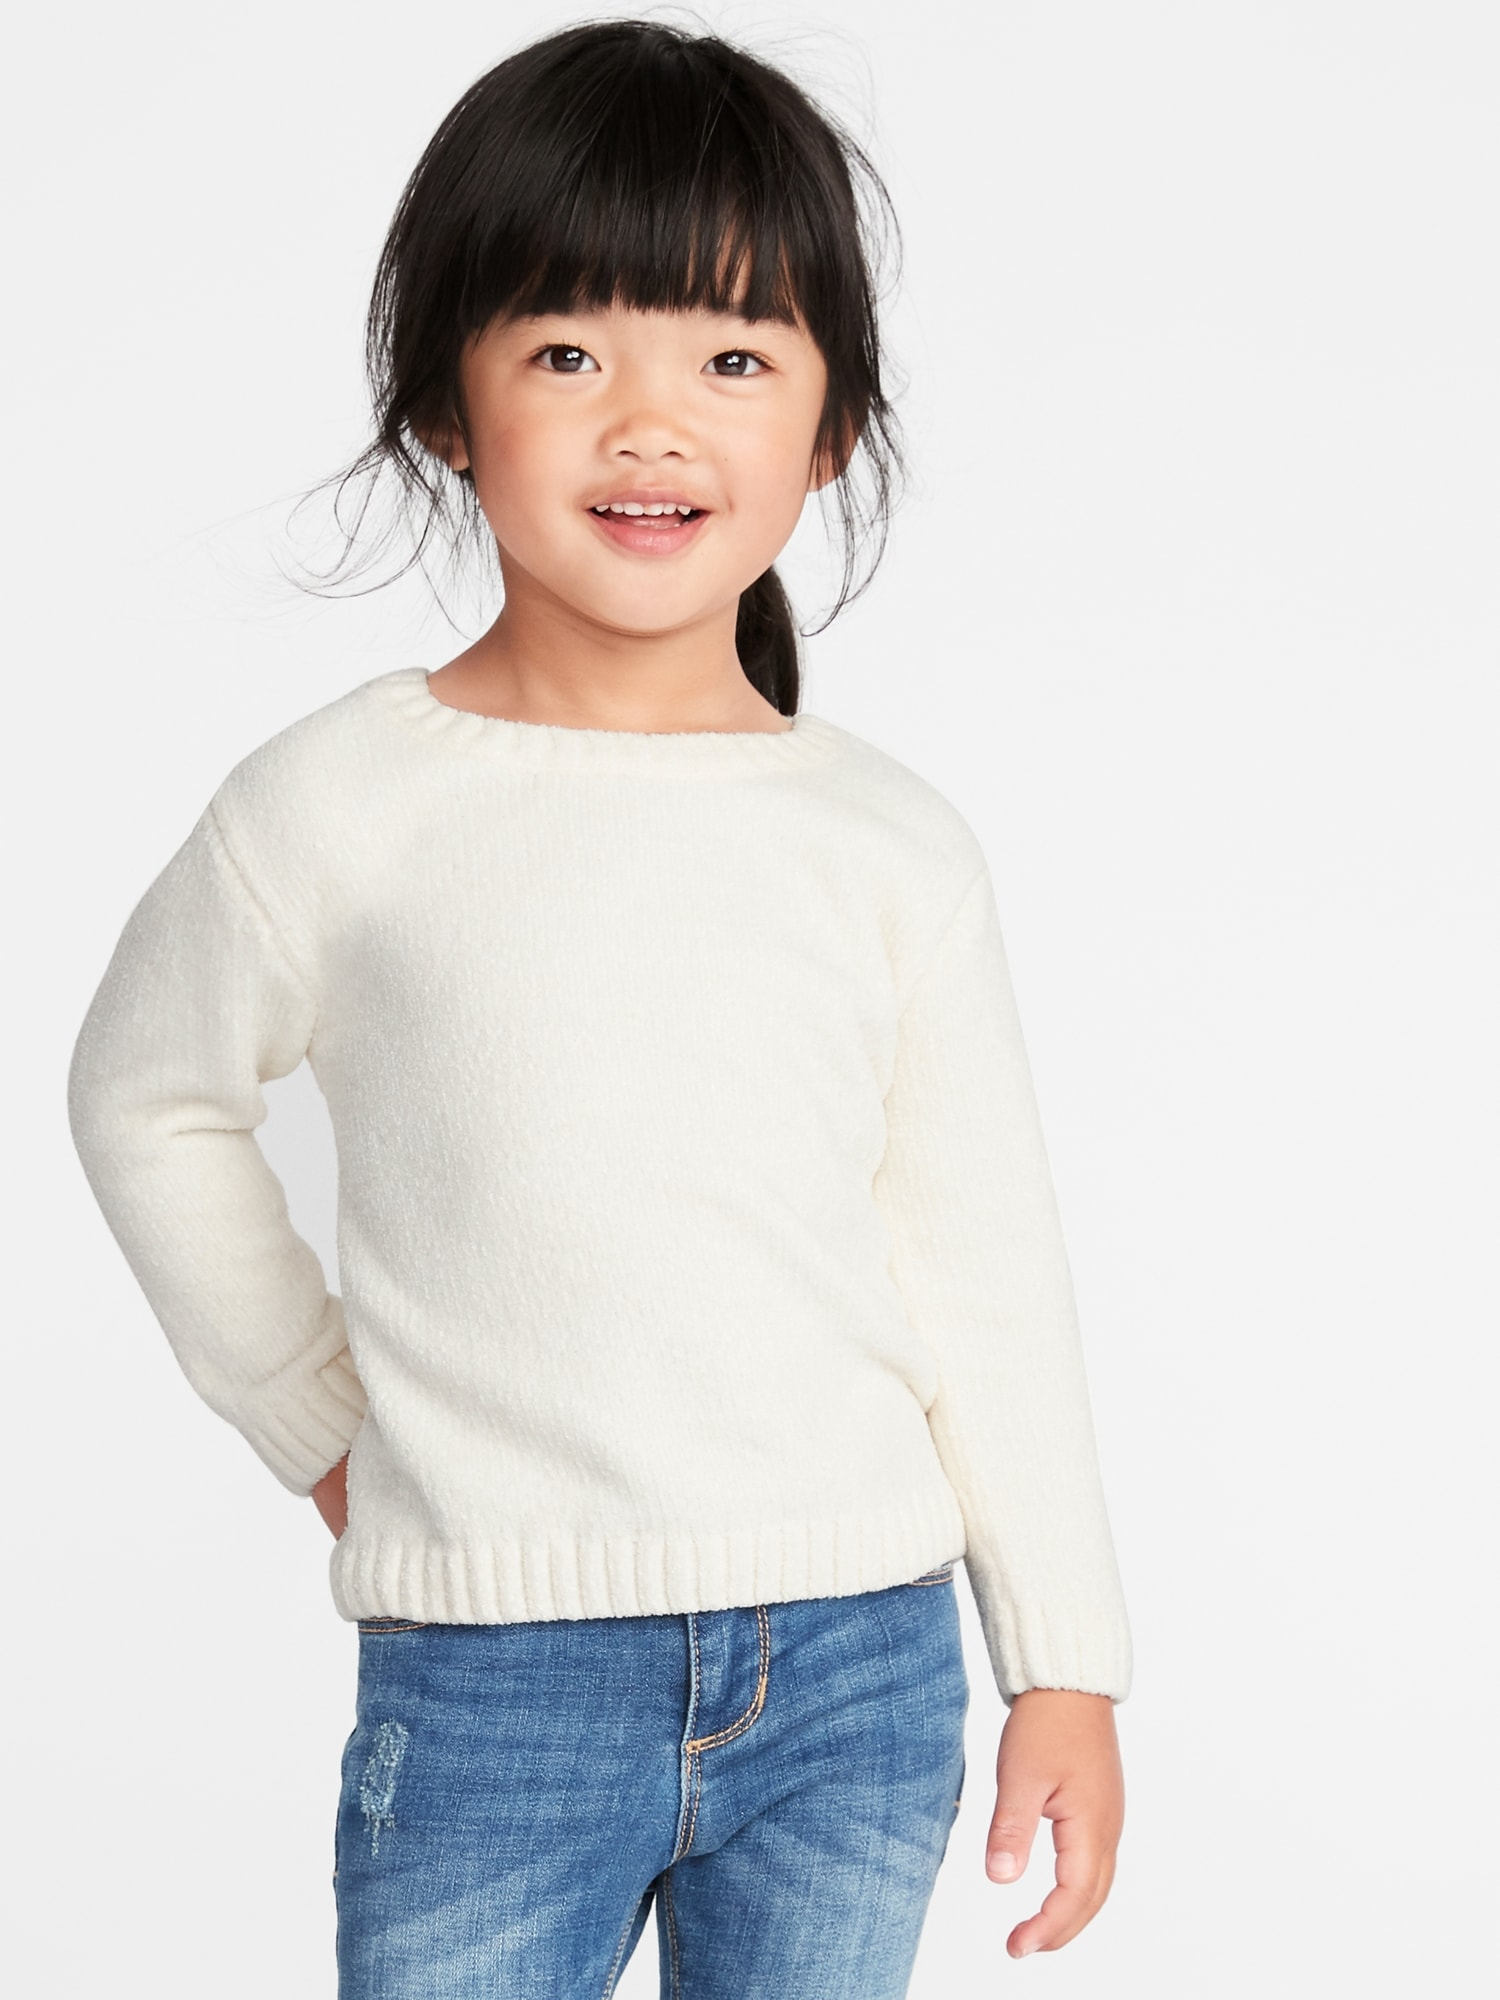 b071a6fa8 Chenille Sweater for Toddler Girls